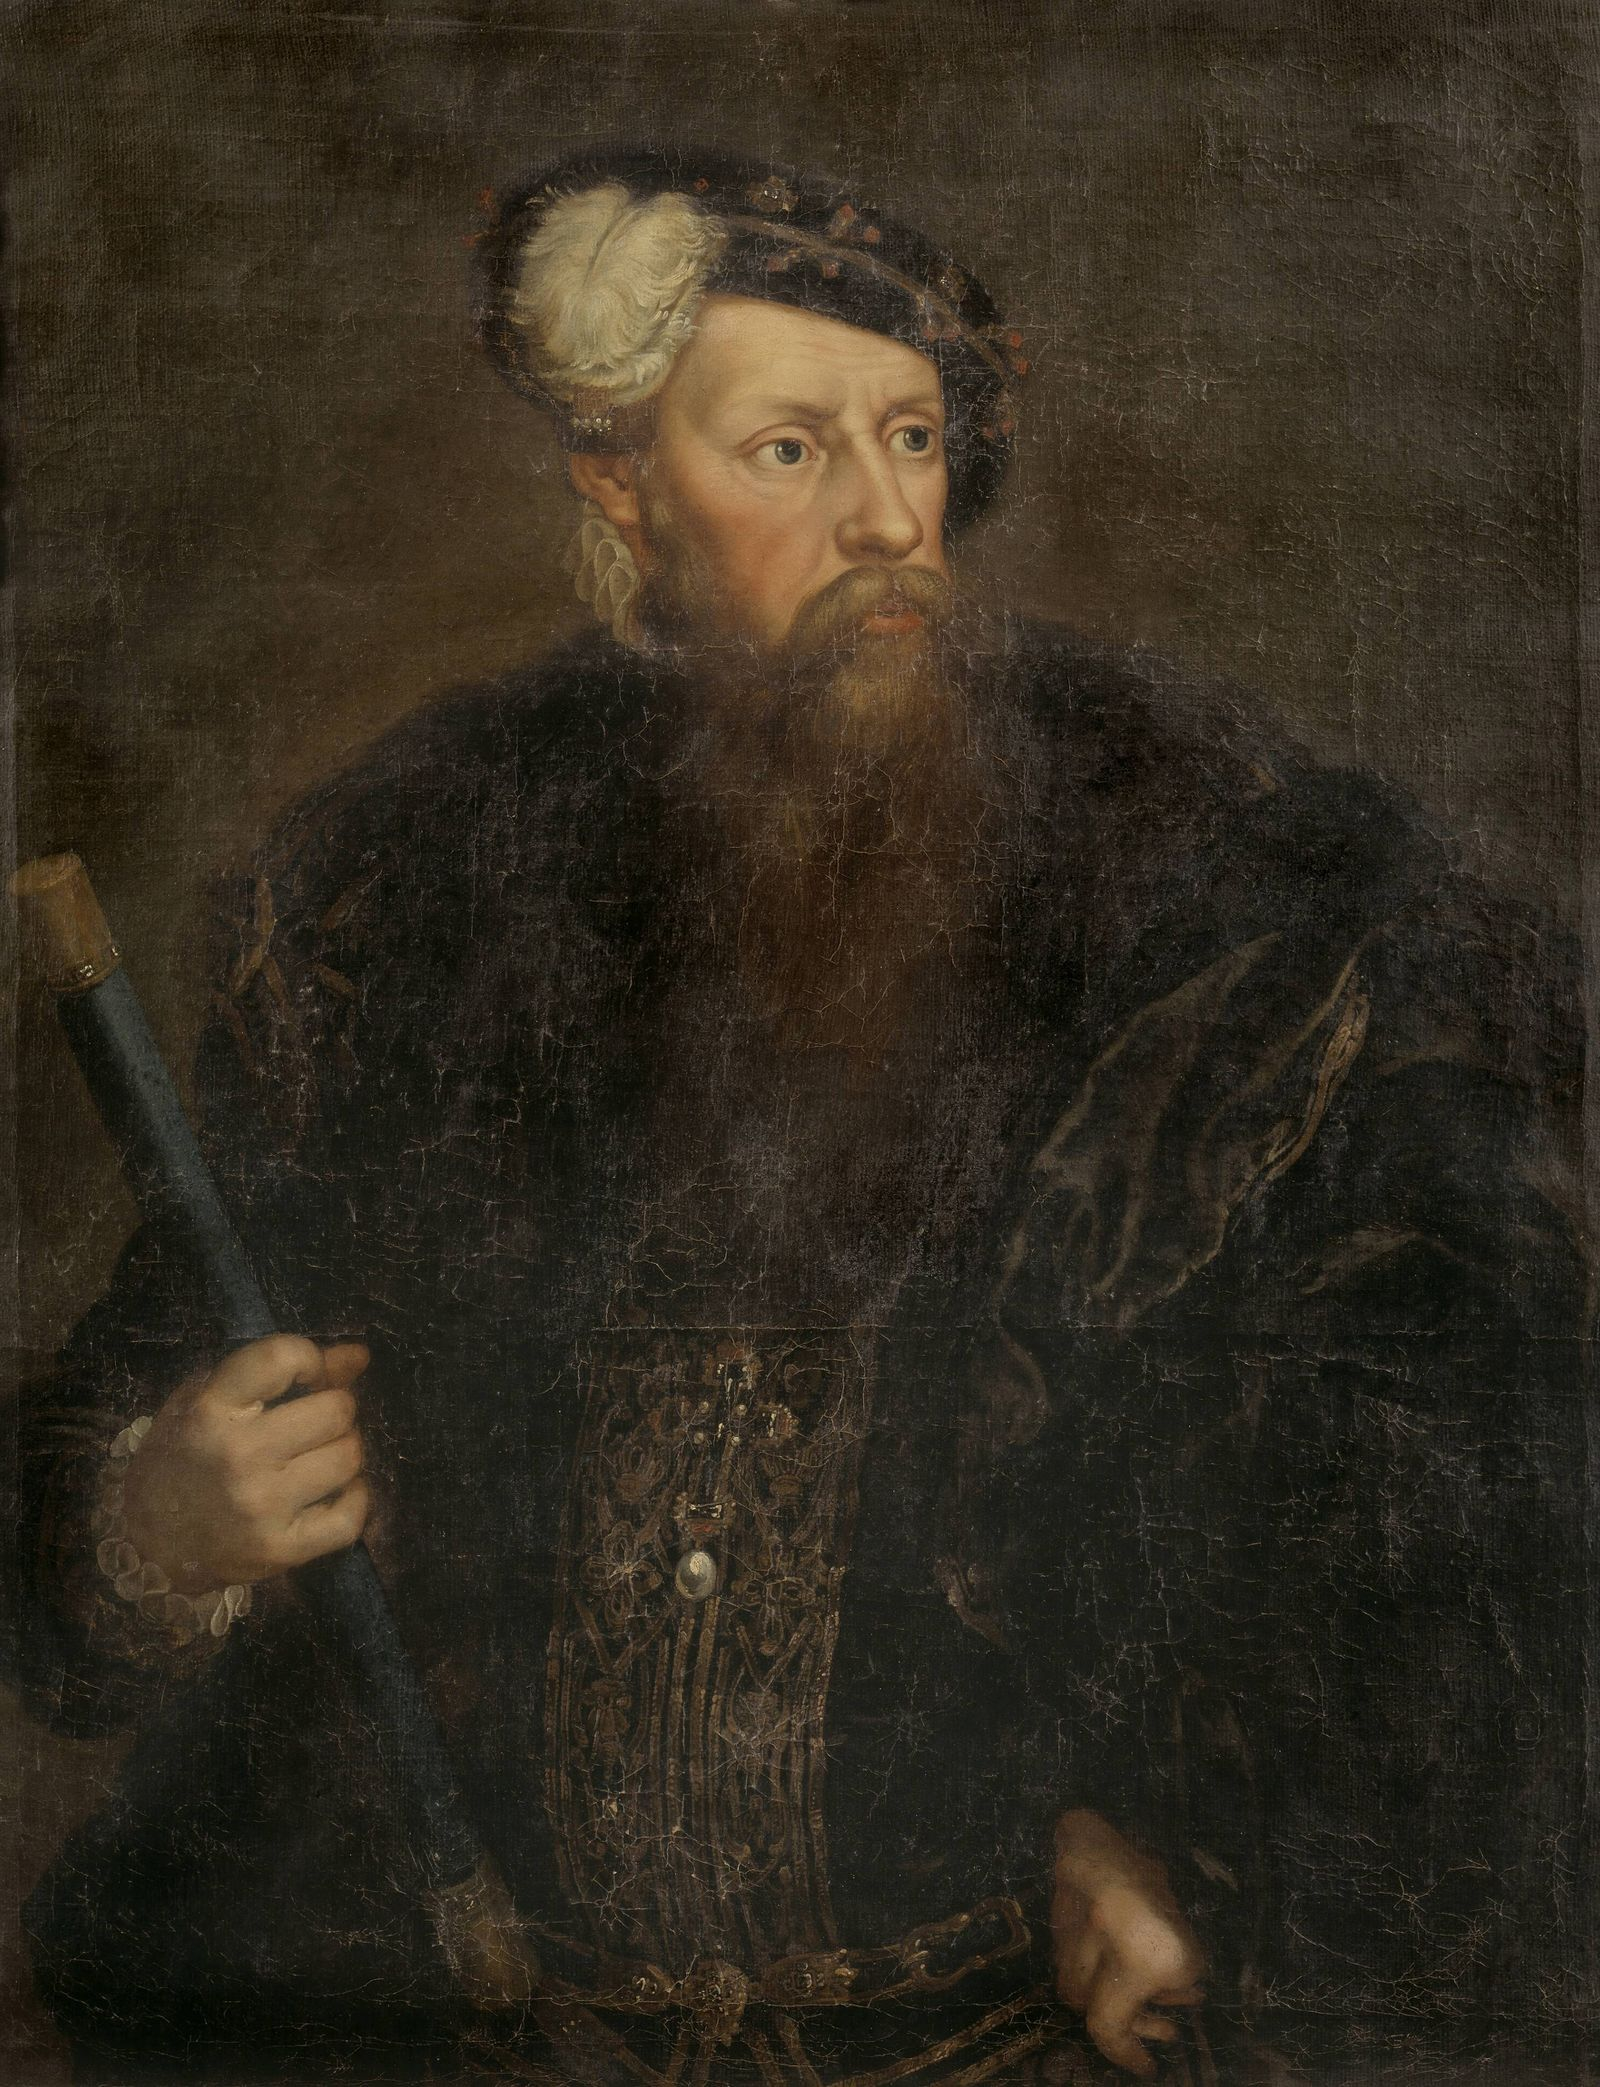 Attributed to Lorens Pasch the Younger, King Gustav I, Gustav I (approx. 1497-1560), King of Sweden Swedish, Gustav Vasa